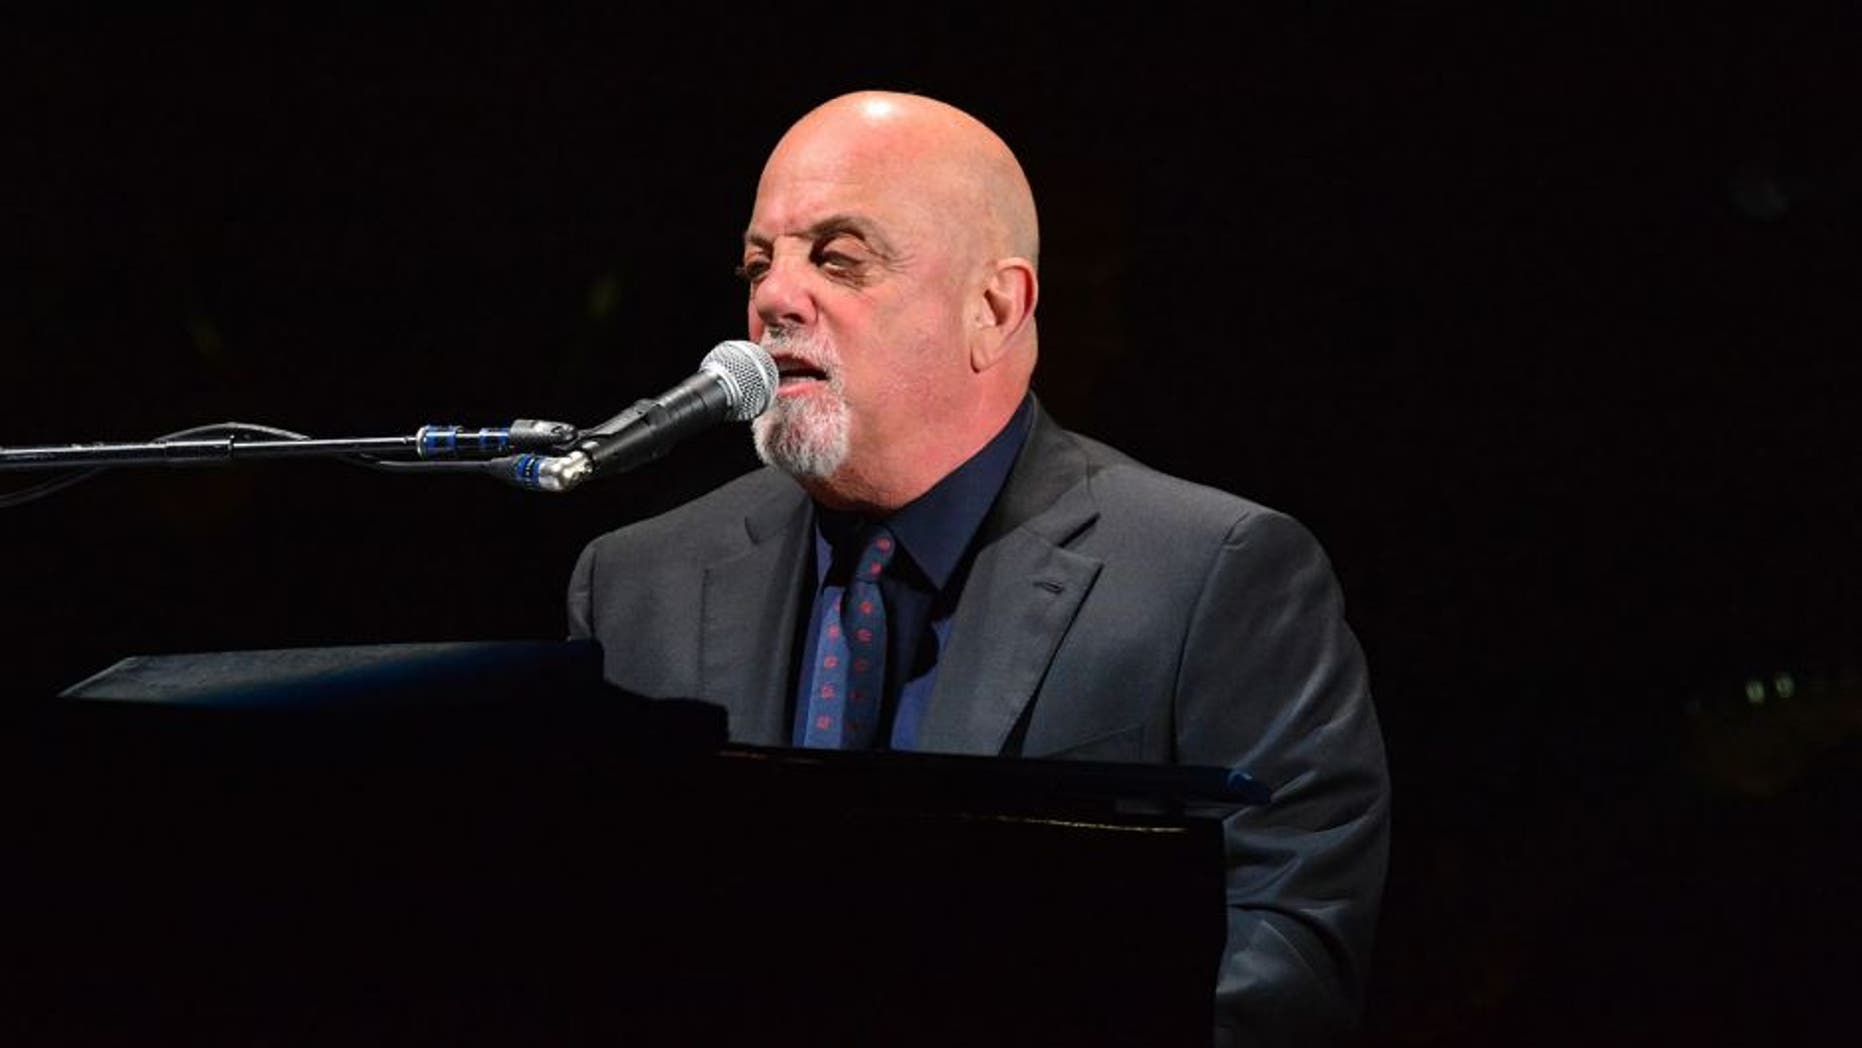 NEW YORK, NY - JULY 01: Billy Joel performs at his 65 concert at Madison Square Garden on July 1, 2015 in New York City. (Photo by Brian Killian/Getty Images)